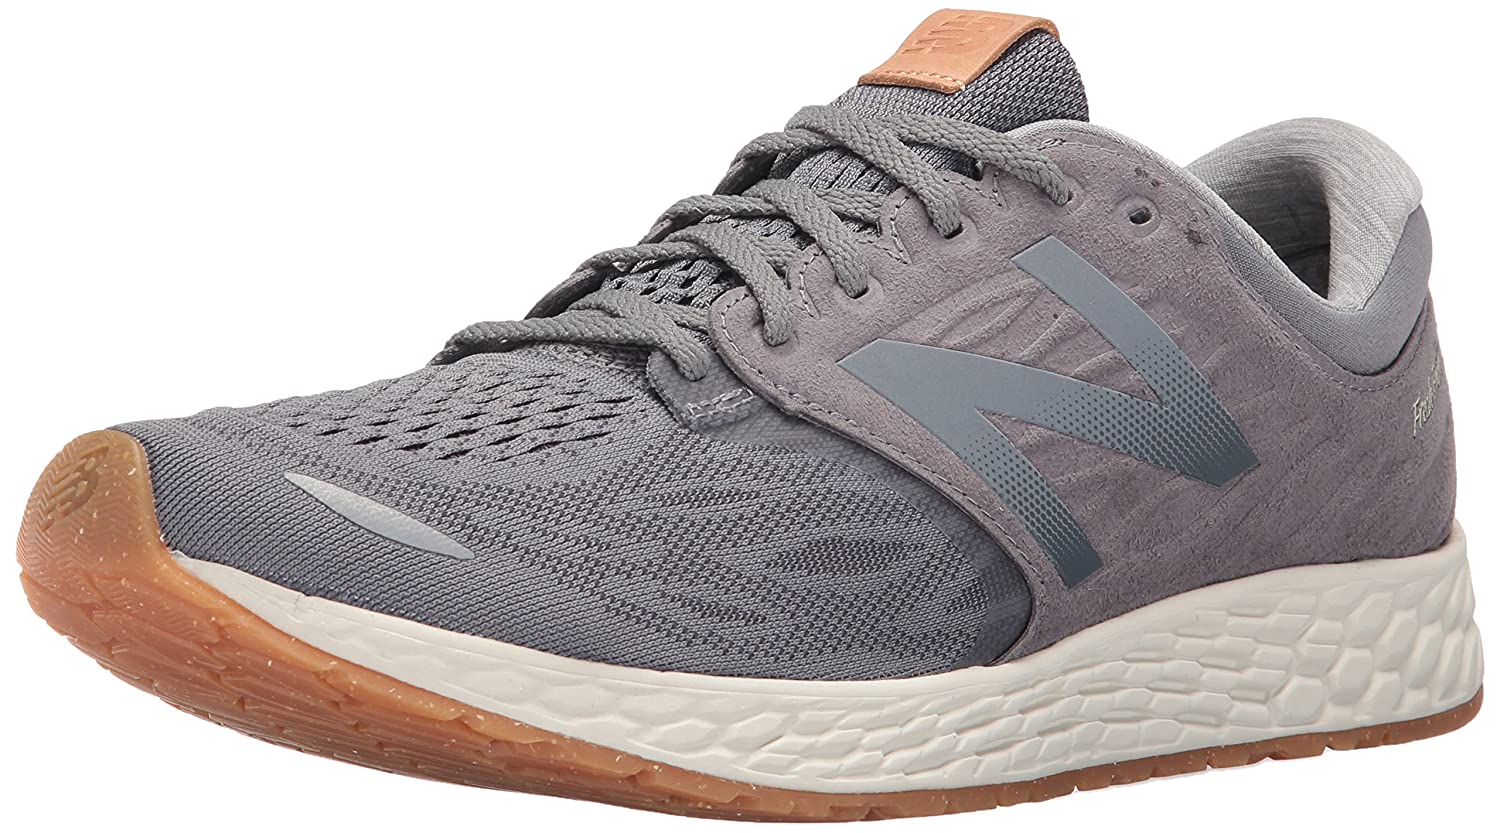 New Balance Men's Fresh Foam Zante V3 Performance Running Shoe B01M10GWZI 12.5 D(M) US|Gunmetal/Sea Salt